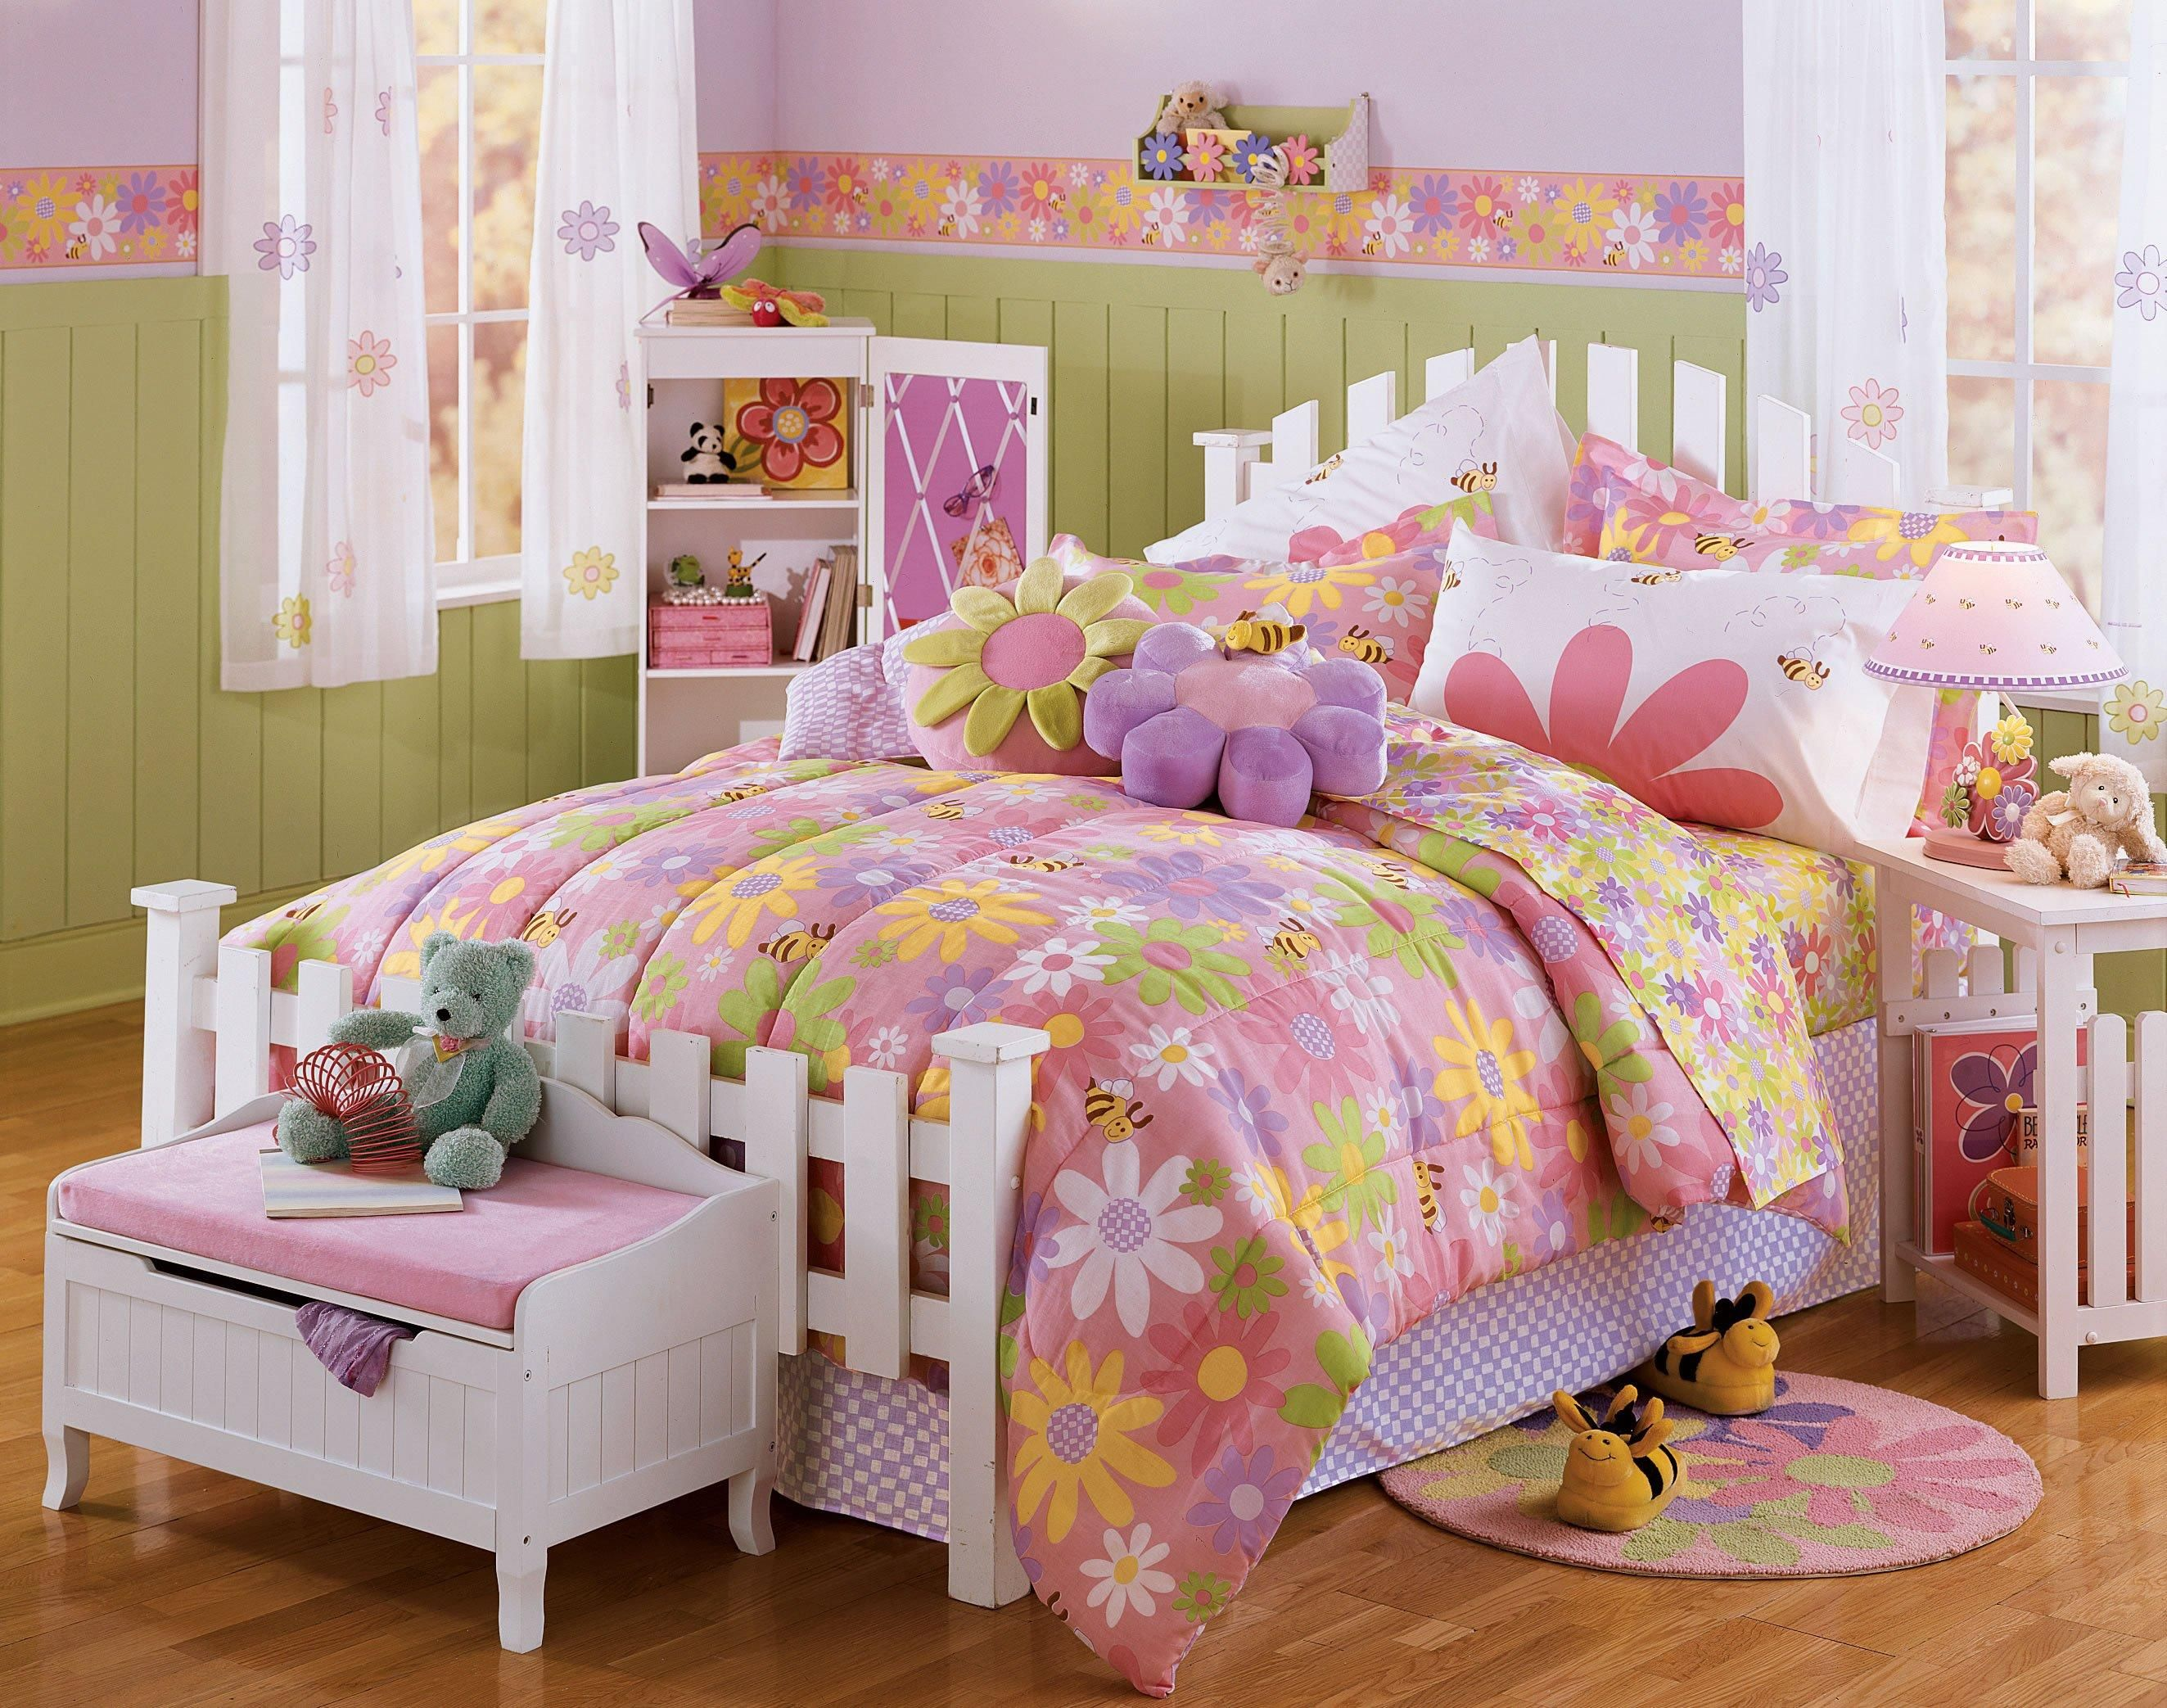 Bedroom ideas for girls pink - Pastel Green And Pink Bedroom Http Rilane Com Decorating Ideas